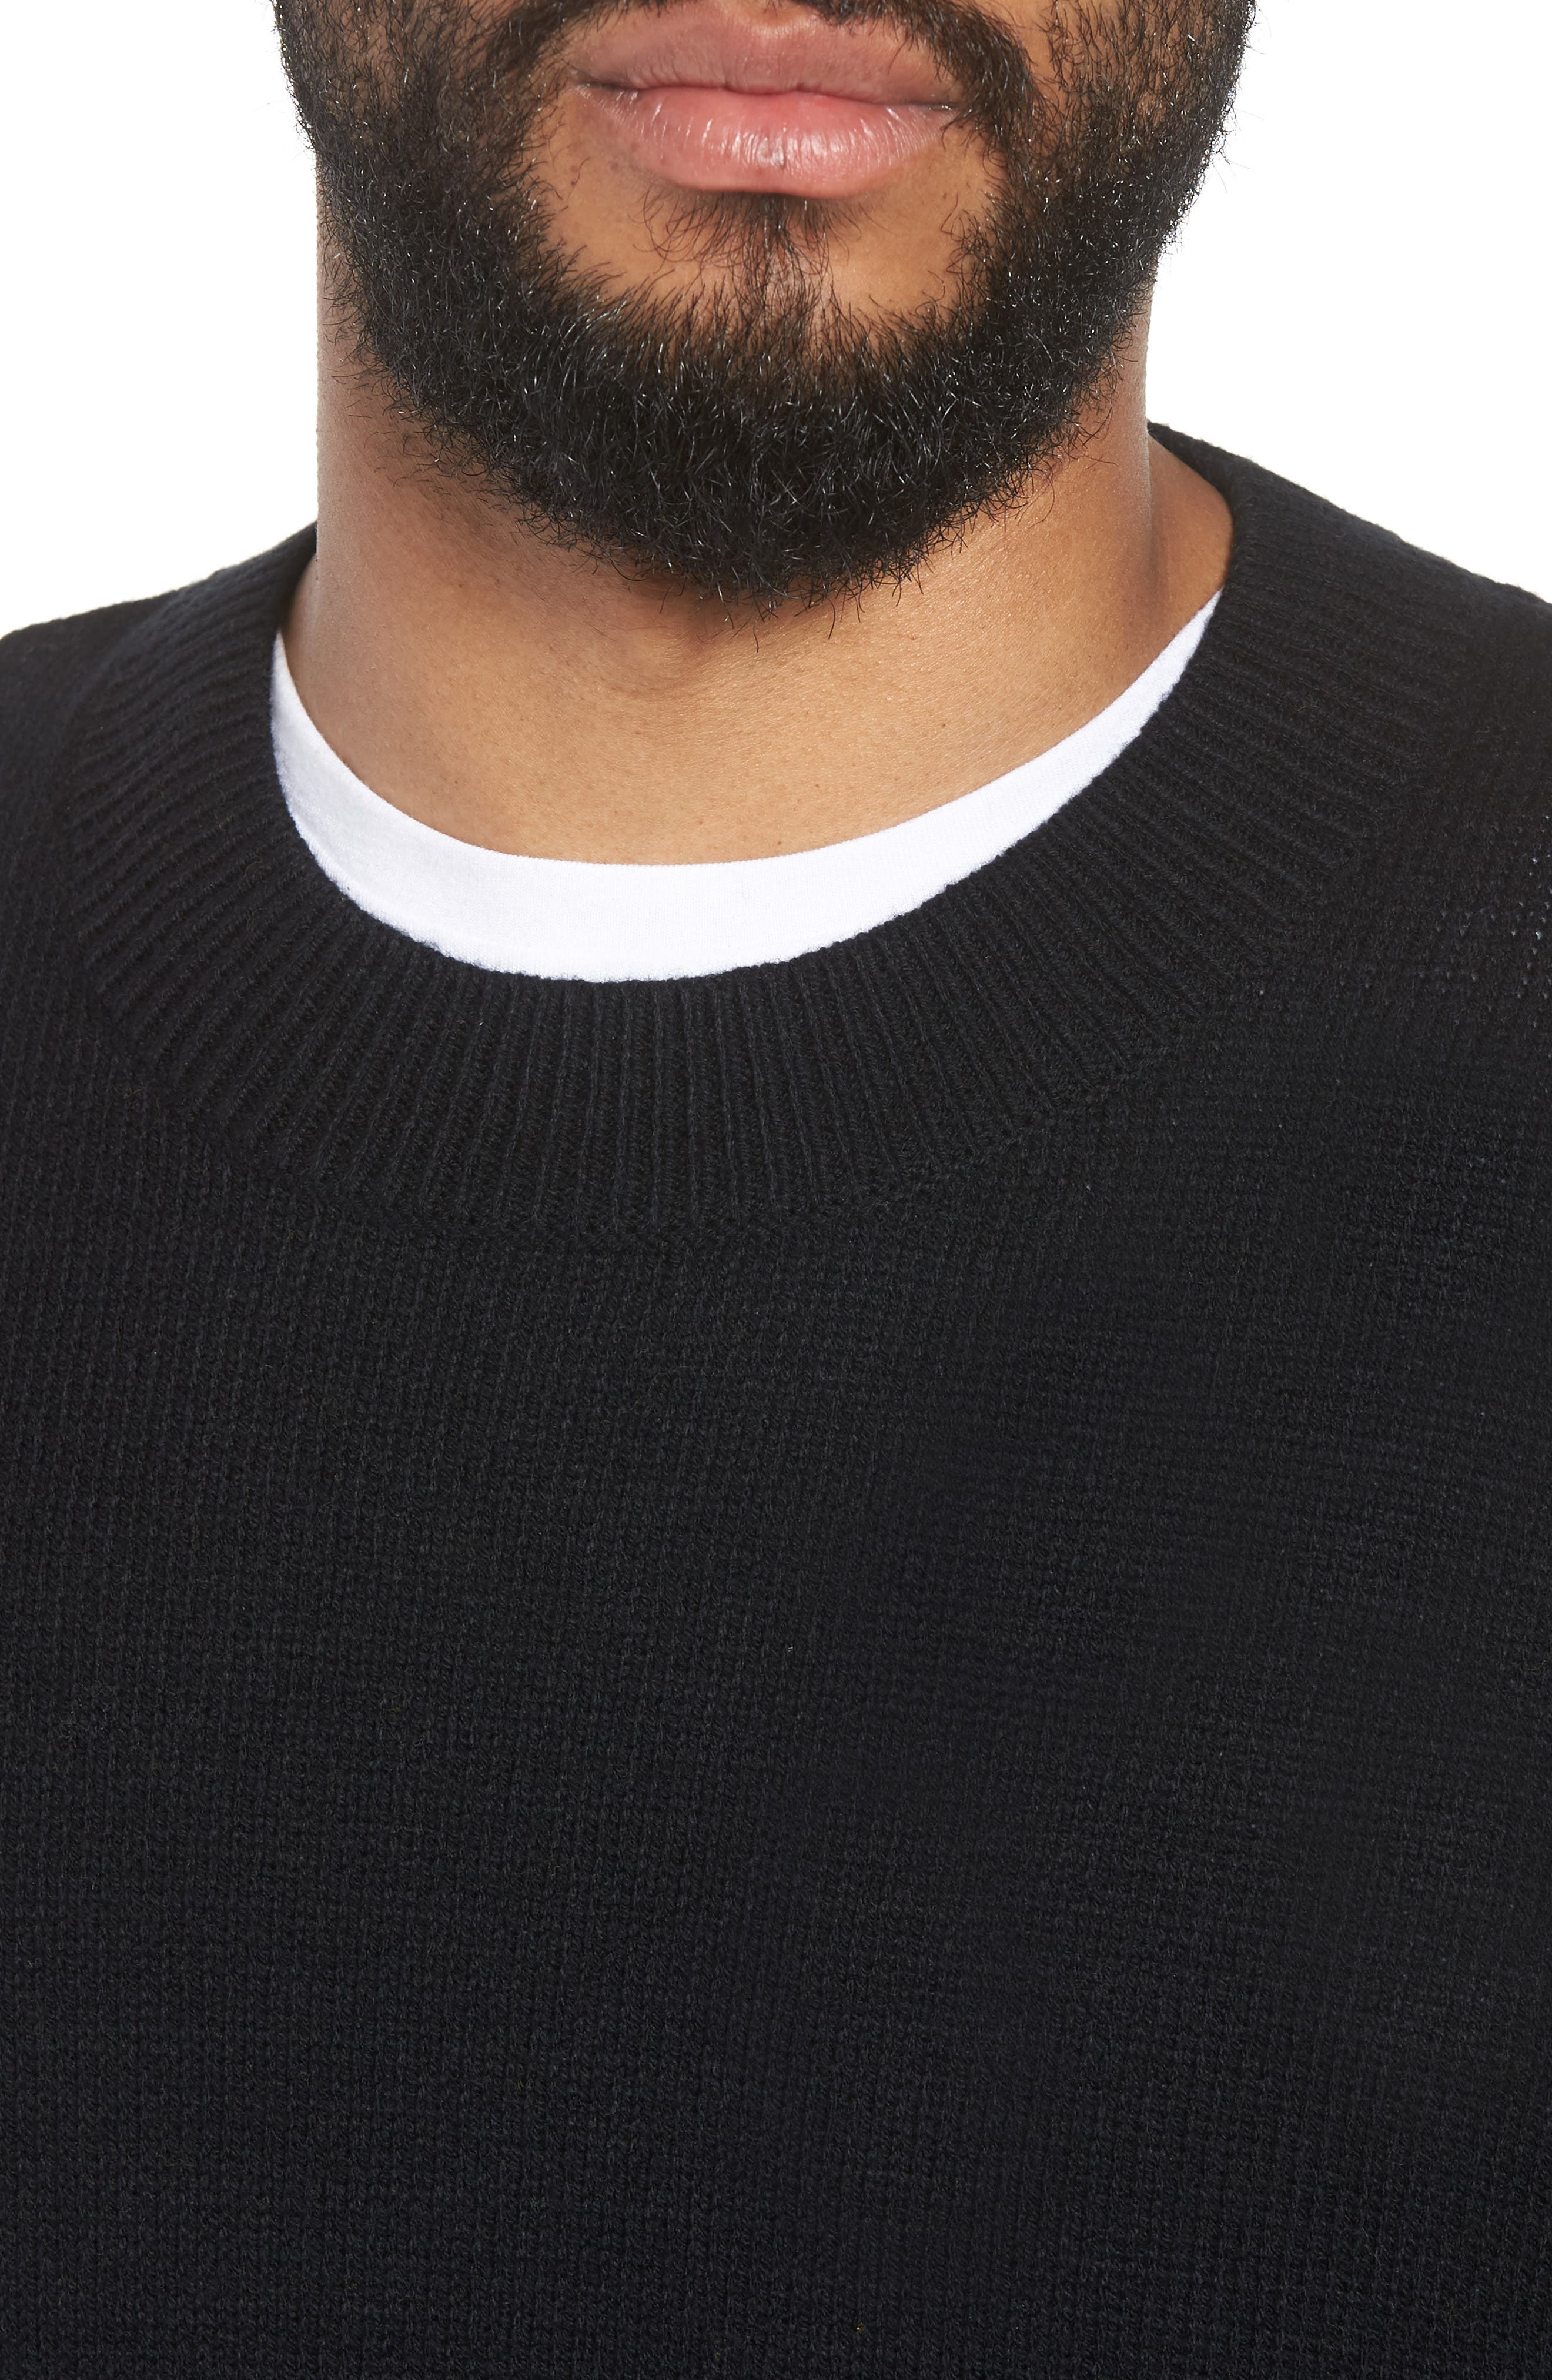 Crewneck Sweater,                             Alternate thumbnail 4, color,                             BLACK ROCK